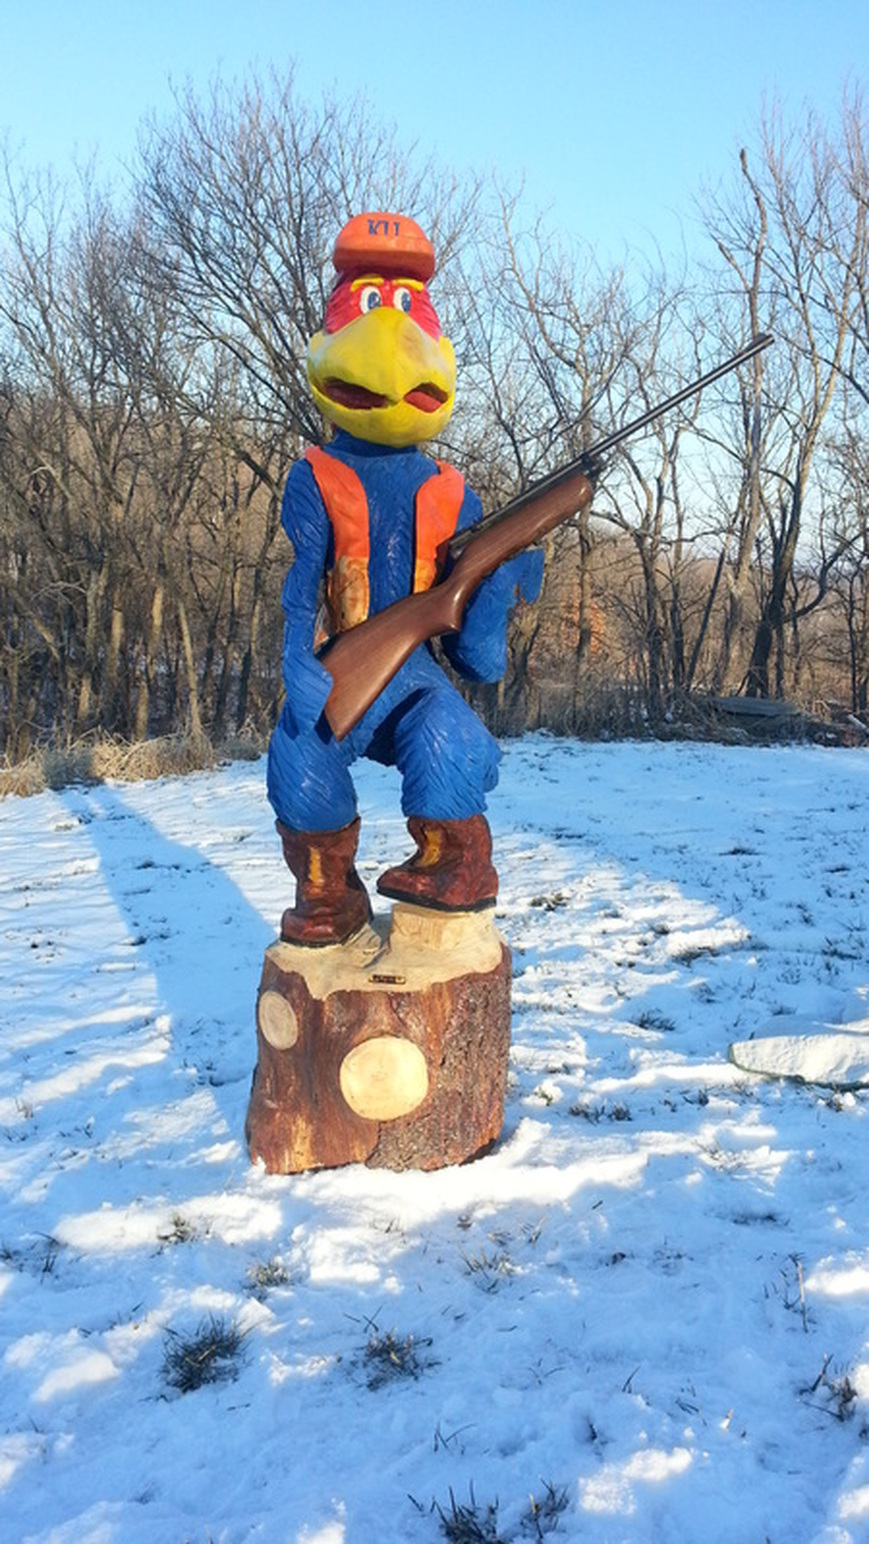 World wide chain saw carving art forum mascot at